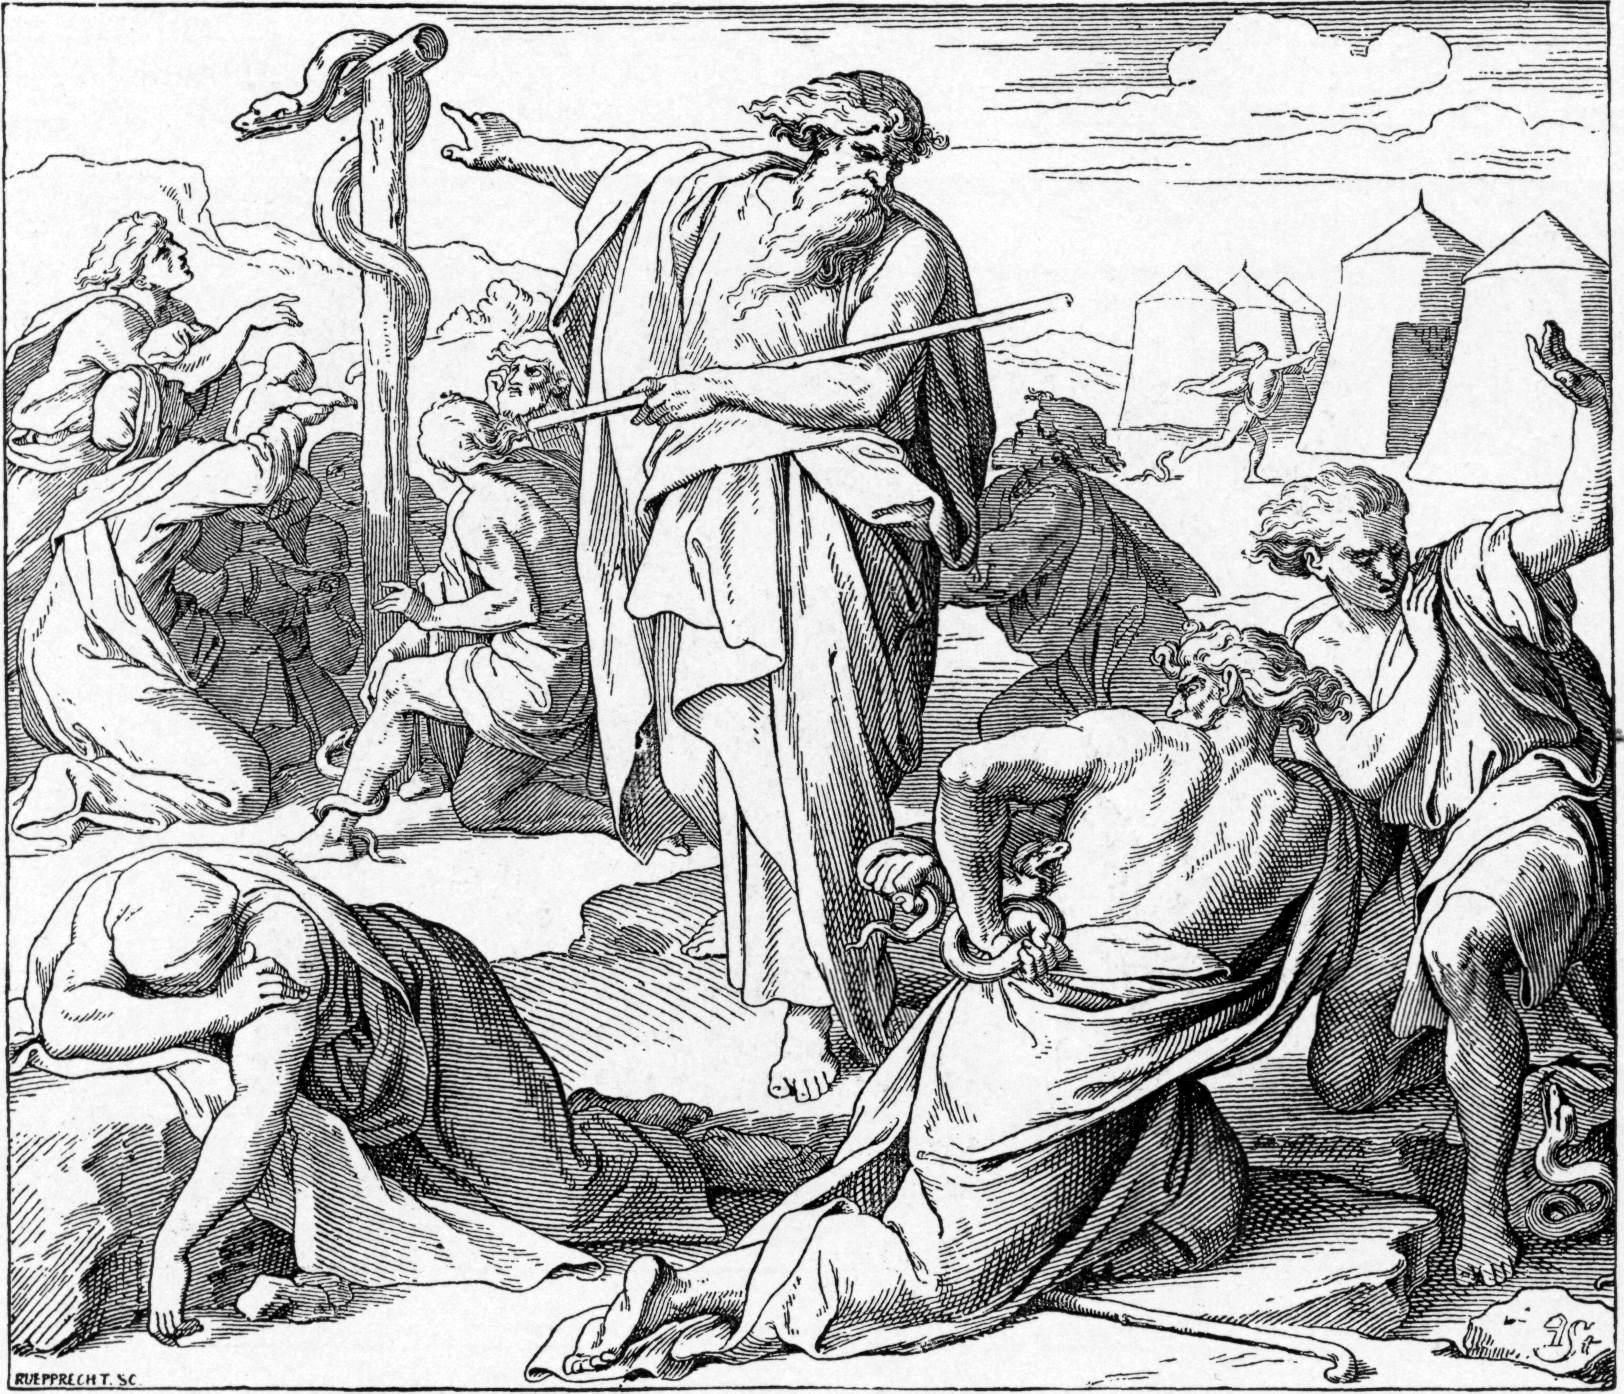 Foster_Bible_Pictures_0079-1_Moses_Pointing_to_a_Great_Snake